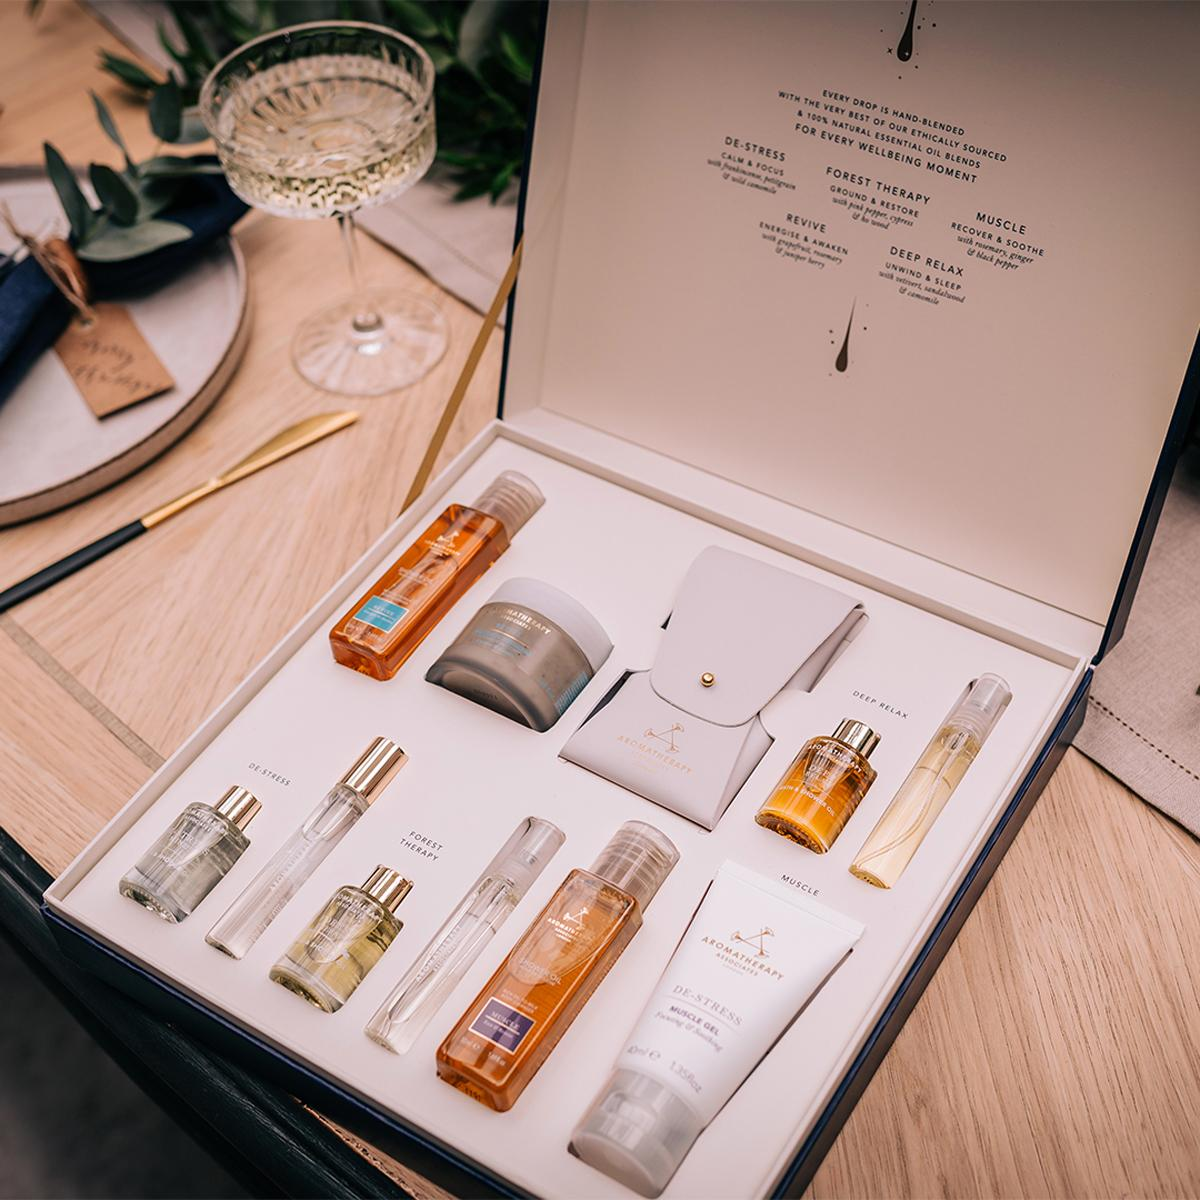 The Our Favourite Moments set is designed to help new customer explore the brand's best-selling blends for the first time, including Revive, Relax, De-Stress, Forest Therapy and Muscle